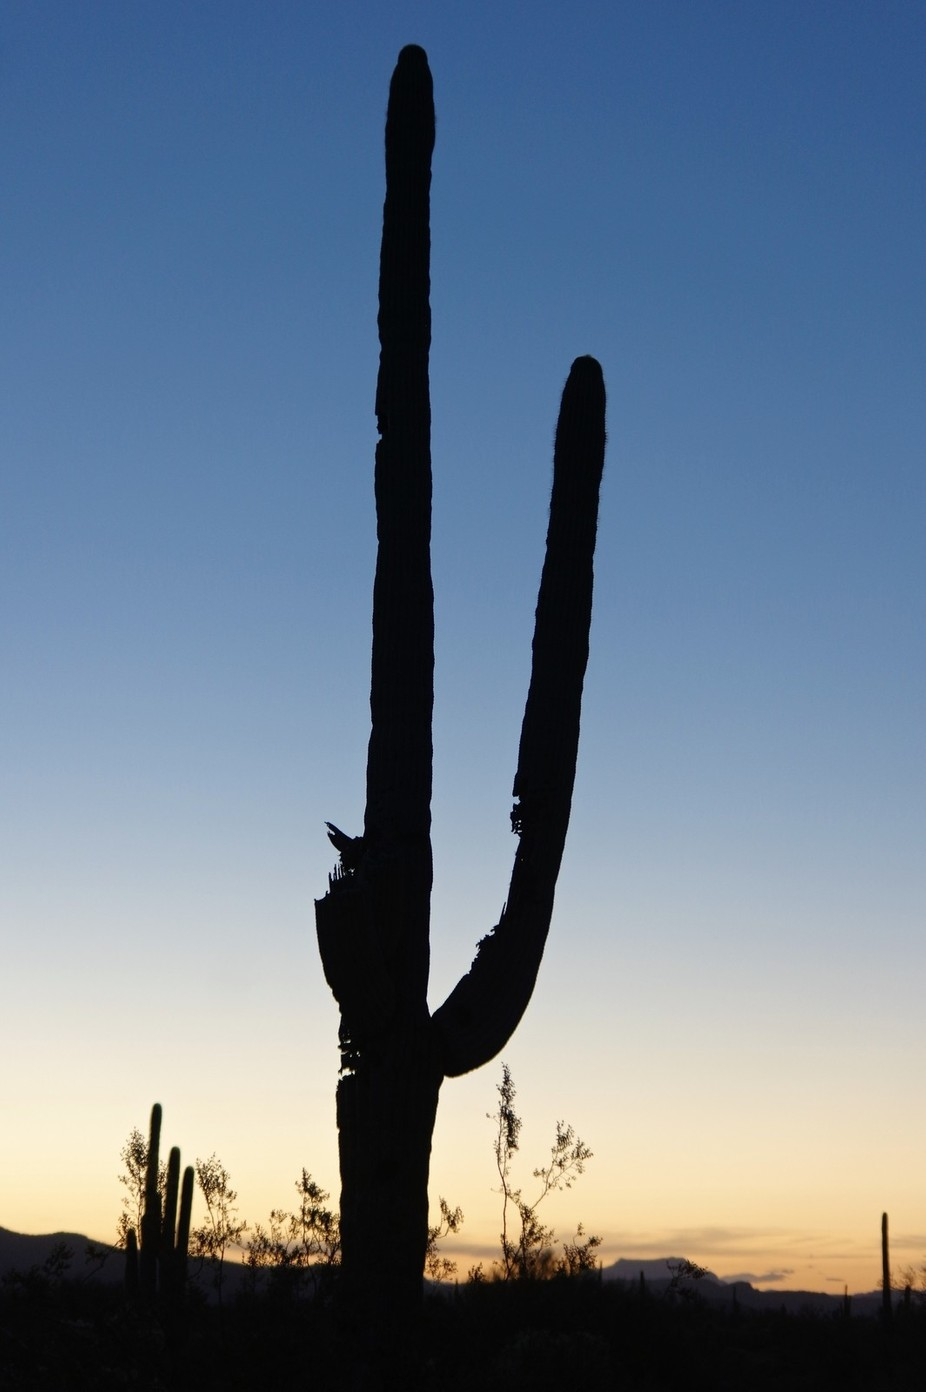 Took this shot early this morning in Gold Canyon Arizona right before sunrise